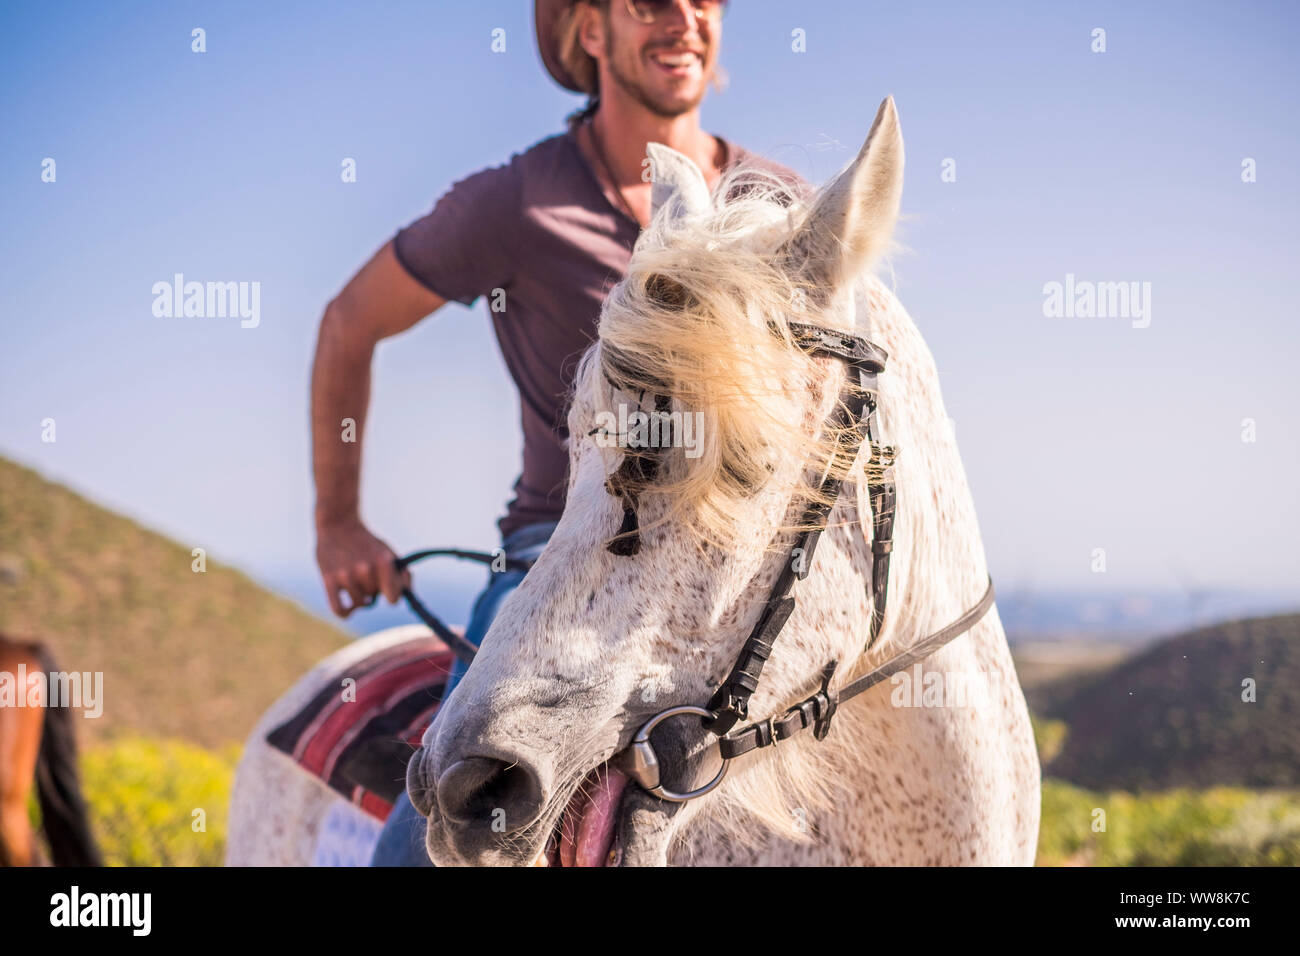 Lady Riding A Horse High Resolution Stock Photography And Images Alamy